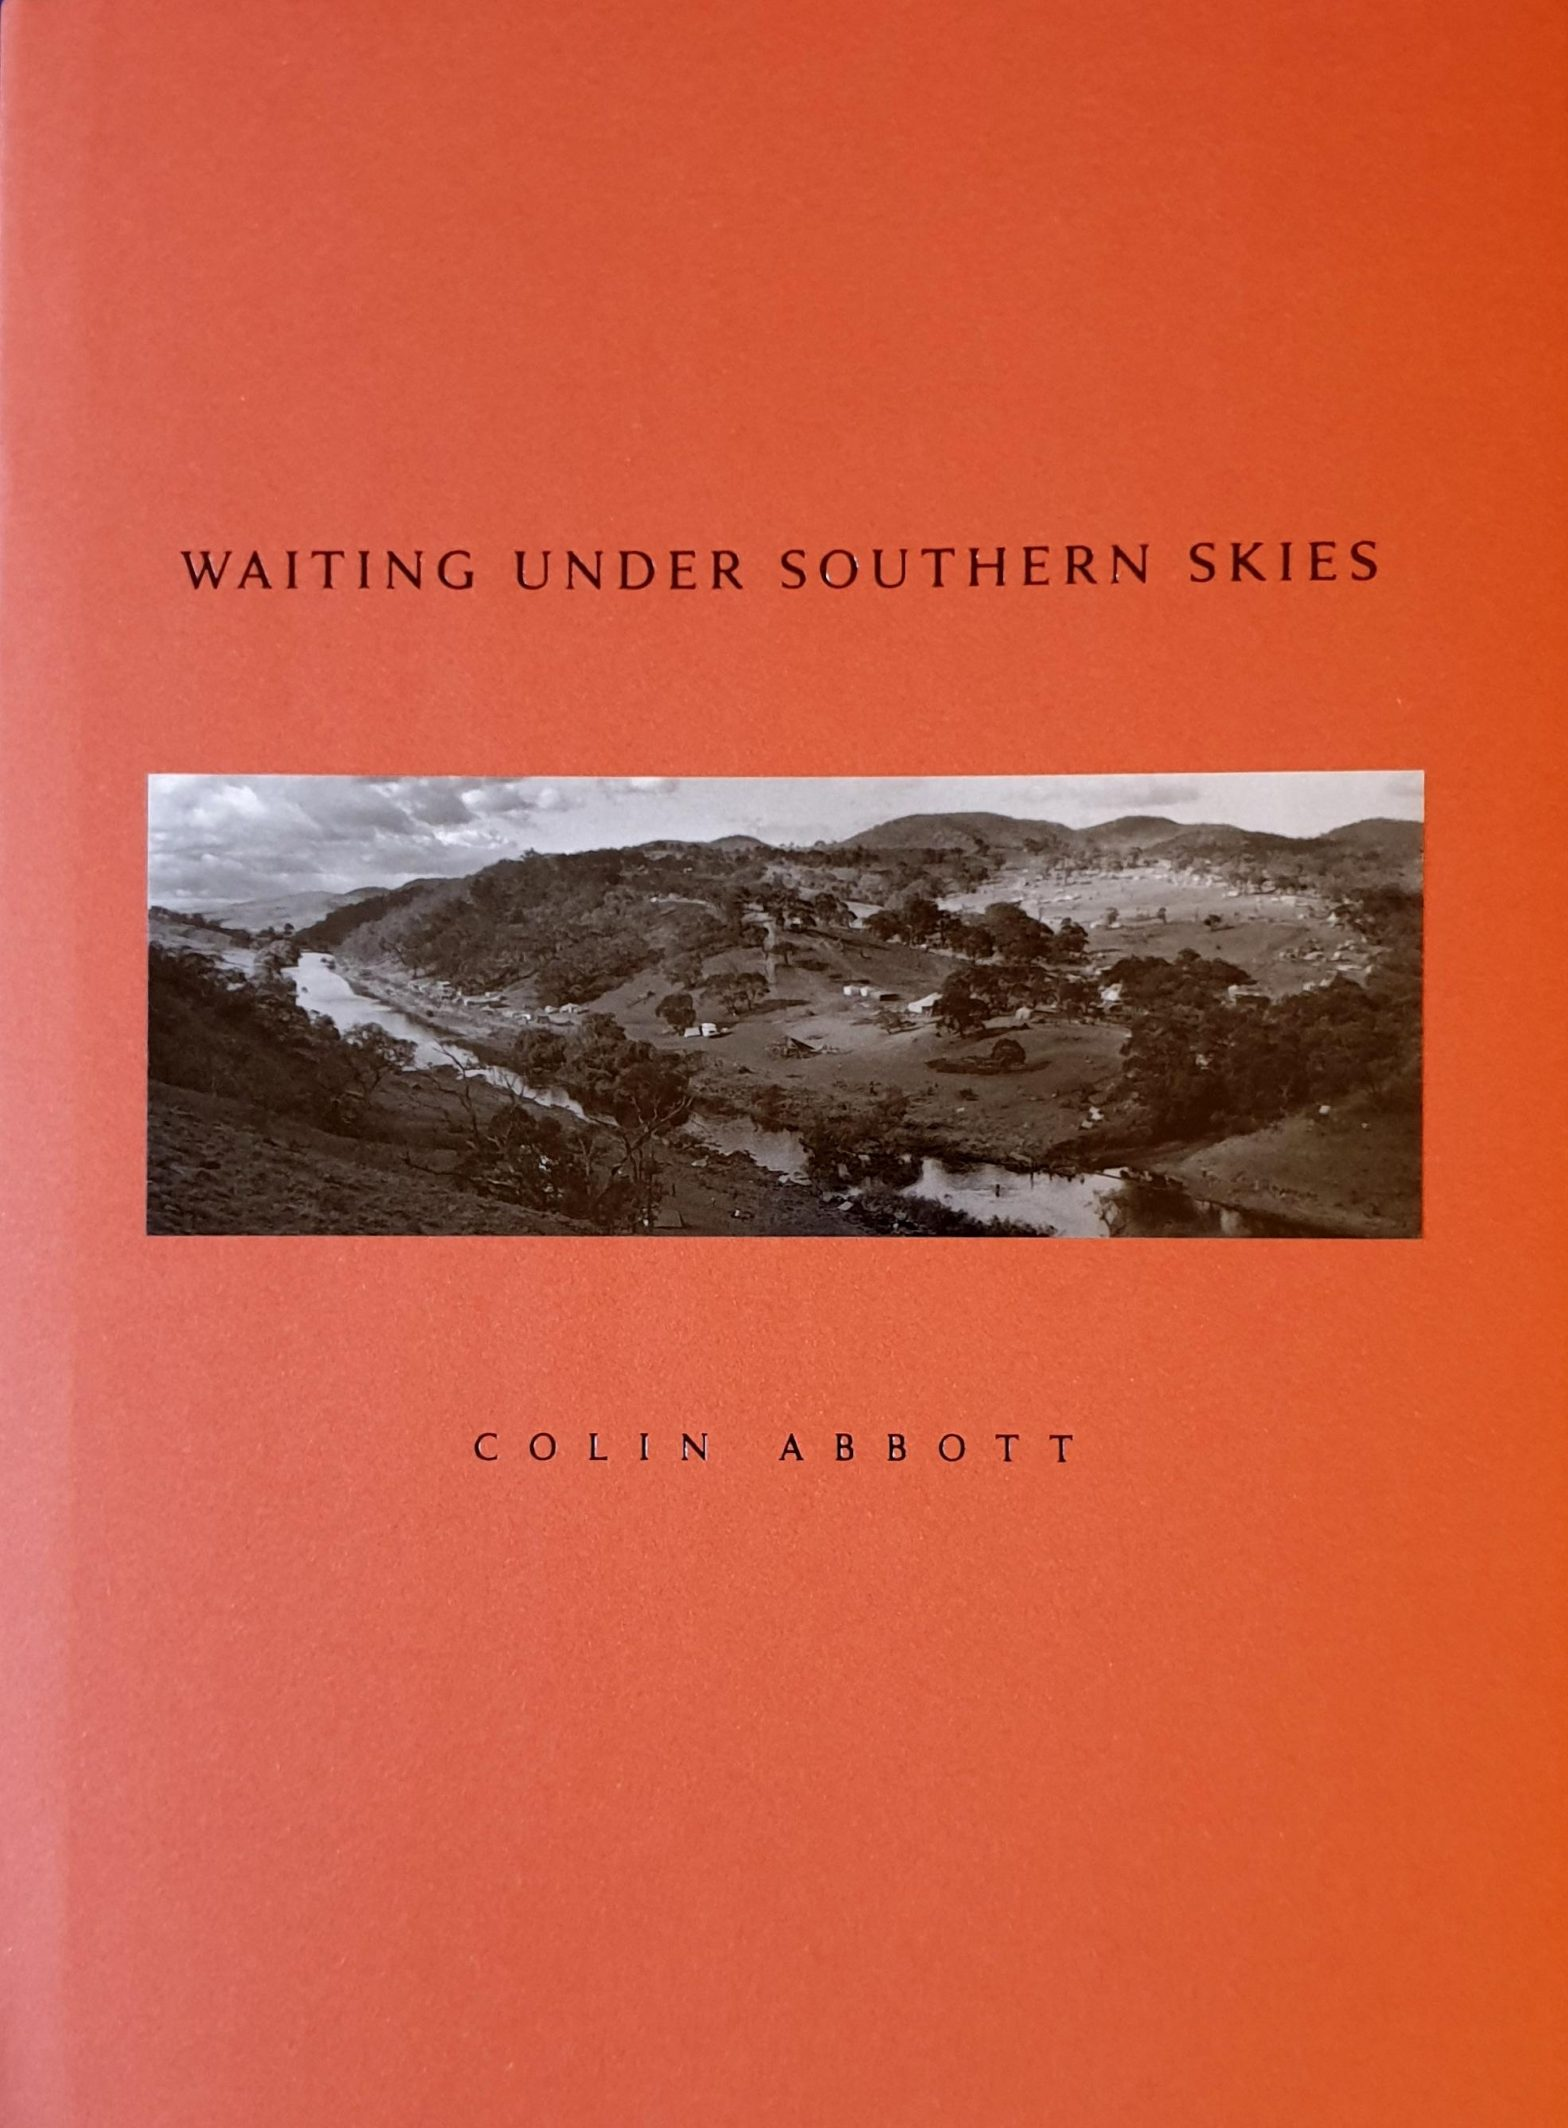 Waiting_Under_Southern_Skies-Colin_Abbott